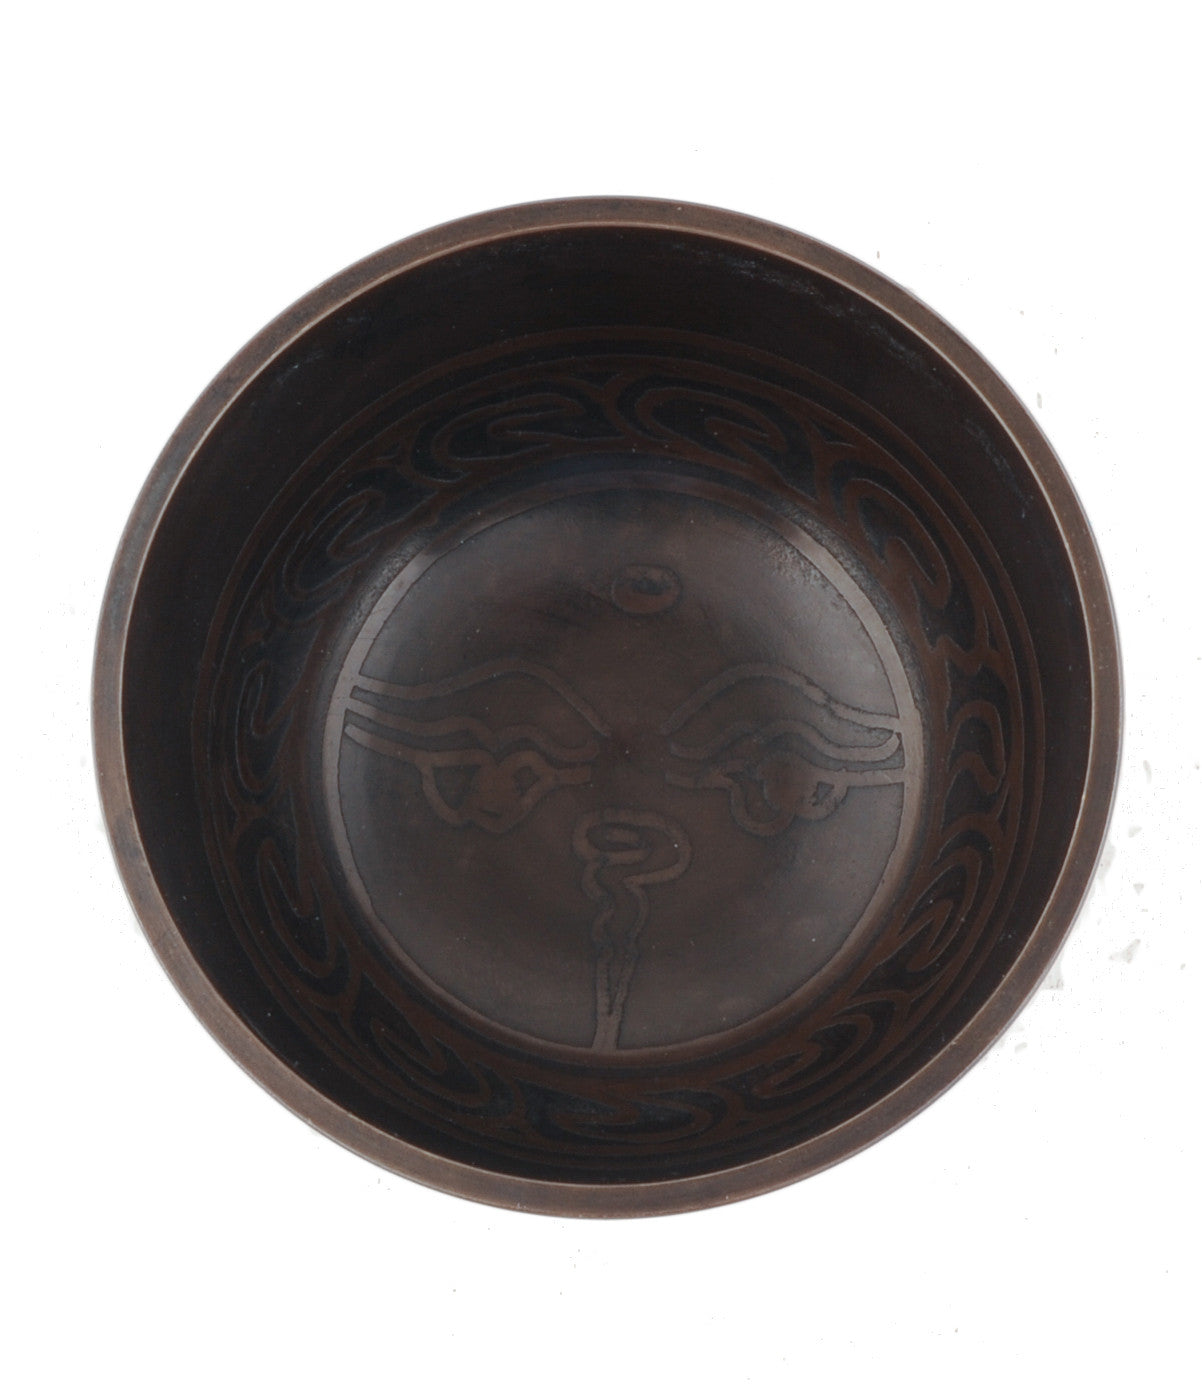 Singing Bowl Gift Set - Om Mani Padme Hum in Tibetan Characters with Eye of Buddha Inside and Endless Knot Underneath